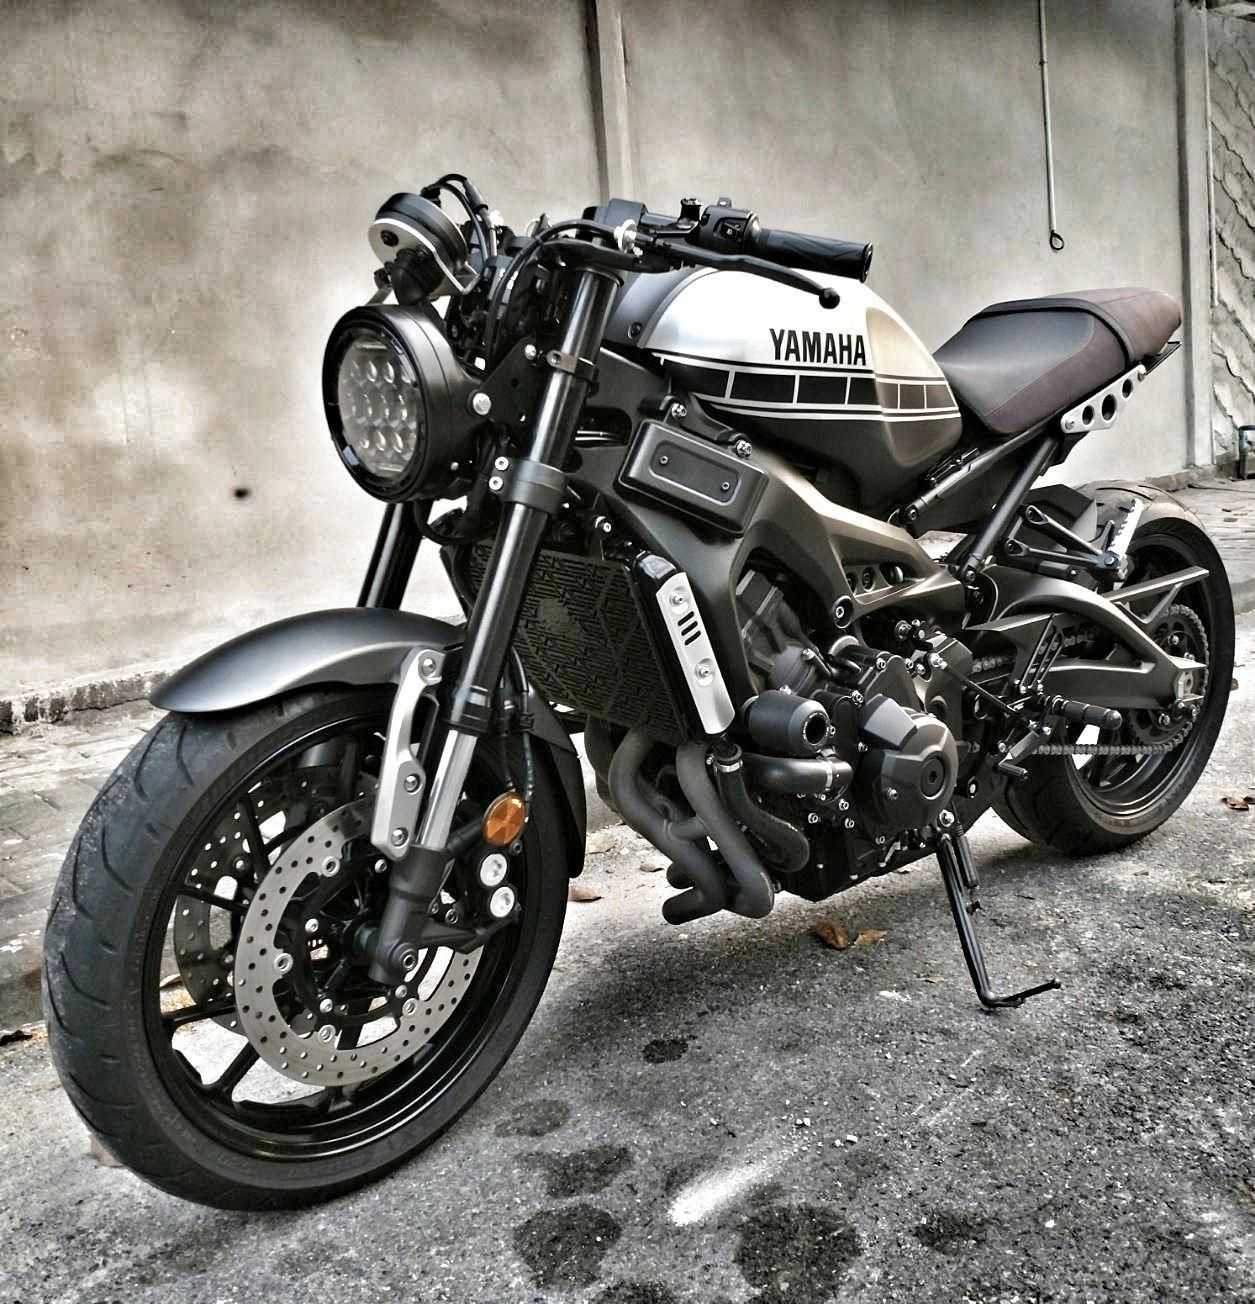 This Particular Photo Is Undeniably An Impressive Design Principle Caferacerdiy Yamaha Cafe Racer Custom Bikes Cafe Racers Motorcycle